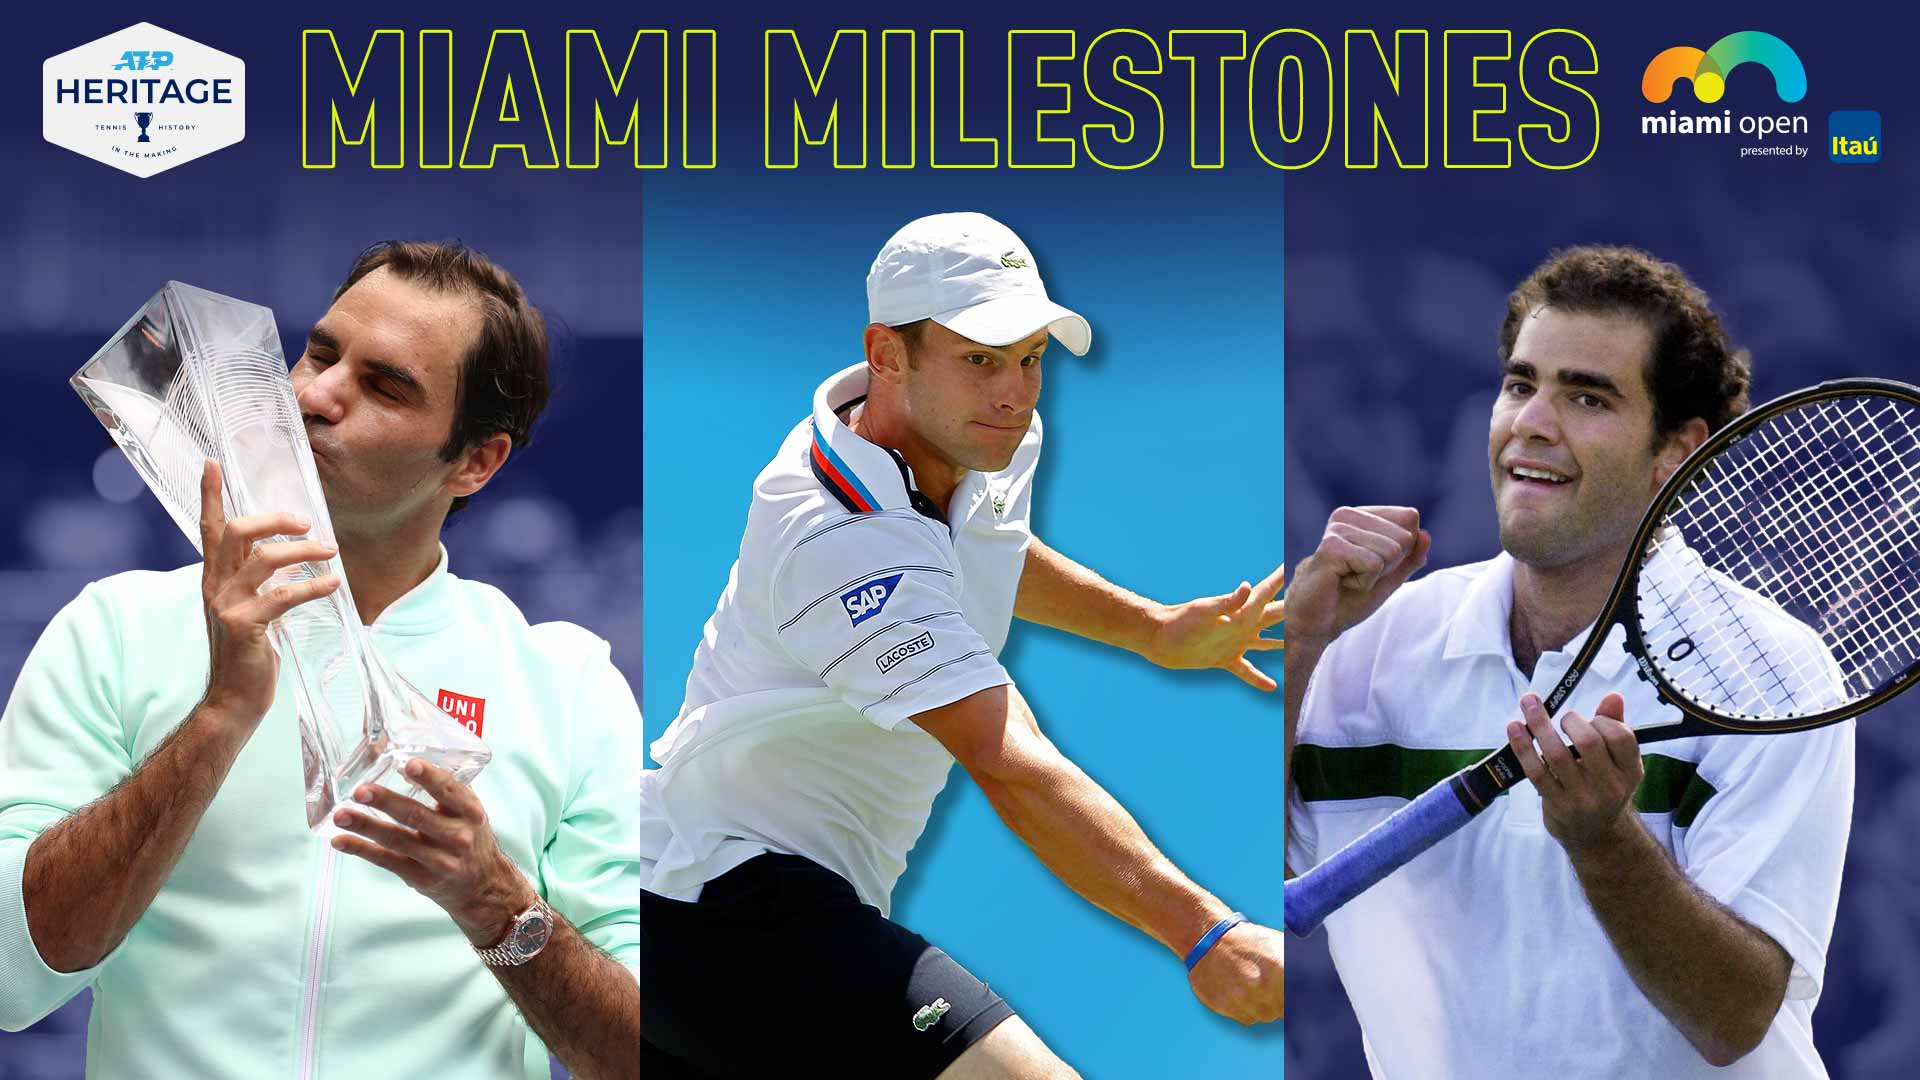 Roger Federer, Andy Roddick and Pete Sampras have lifted the Miami Open presented by Itau trophy on multiple occasions.